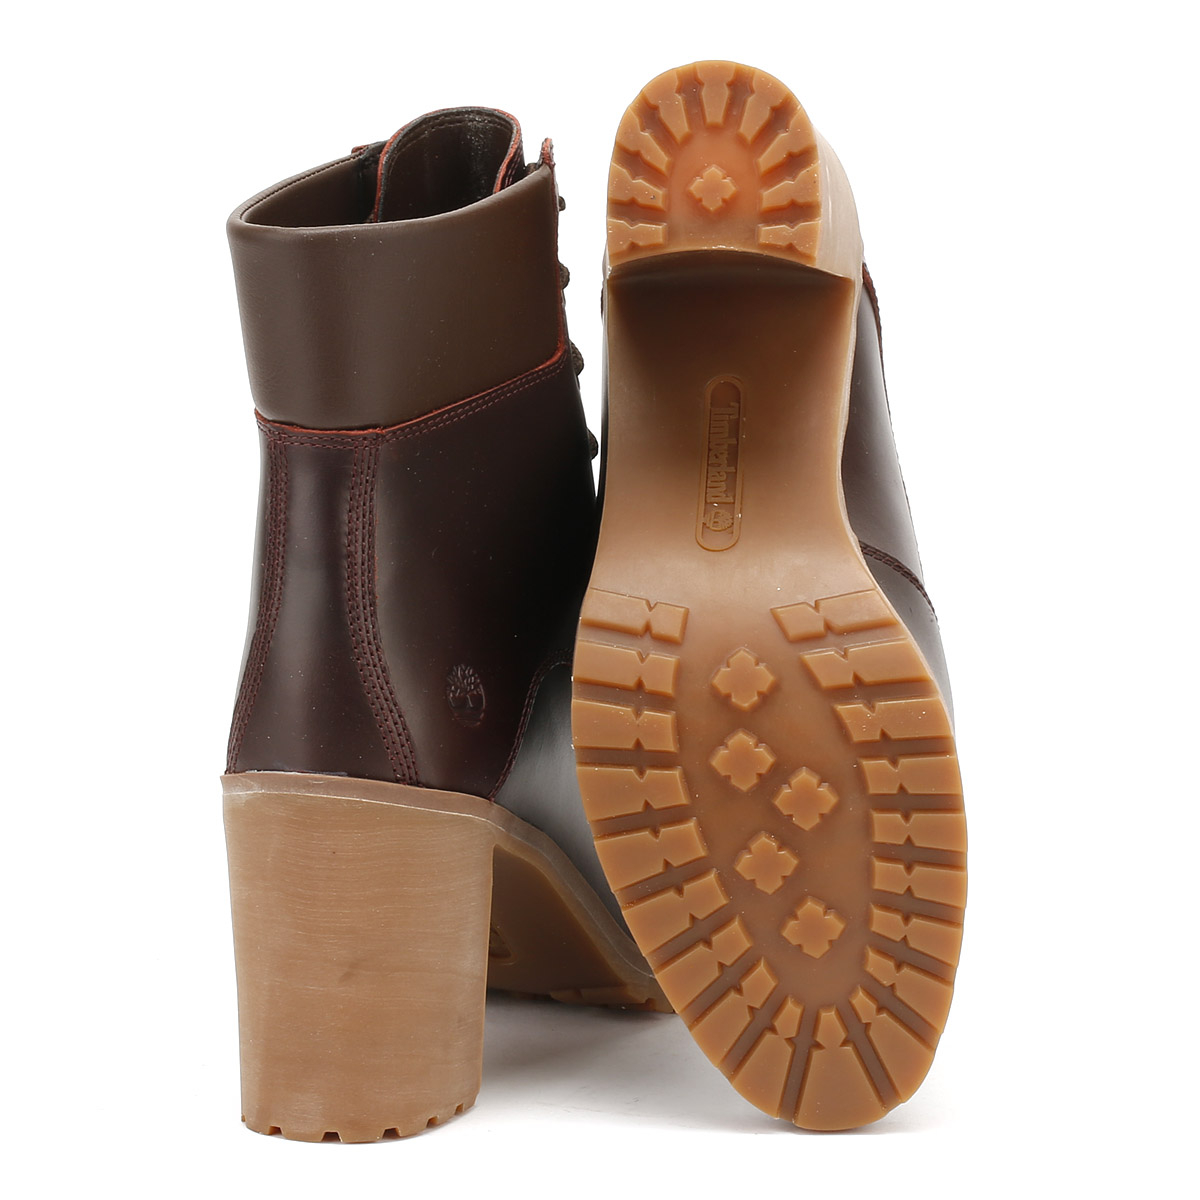 Cheap Sale Wide Range Of Cheap Sale Outlet Locations Timberland Womens Redwood Burgundy Allington 6 Inch Boots Cheap Sale Genuine Clearance Shop Offer Footaction Cheap Price 6hgHBTmw